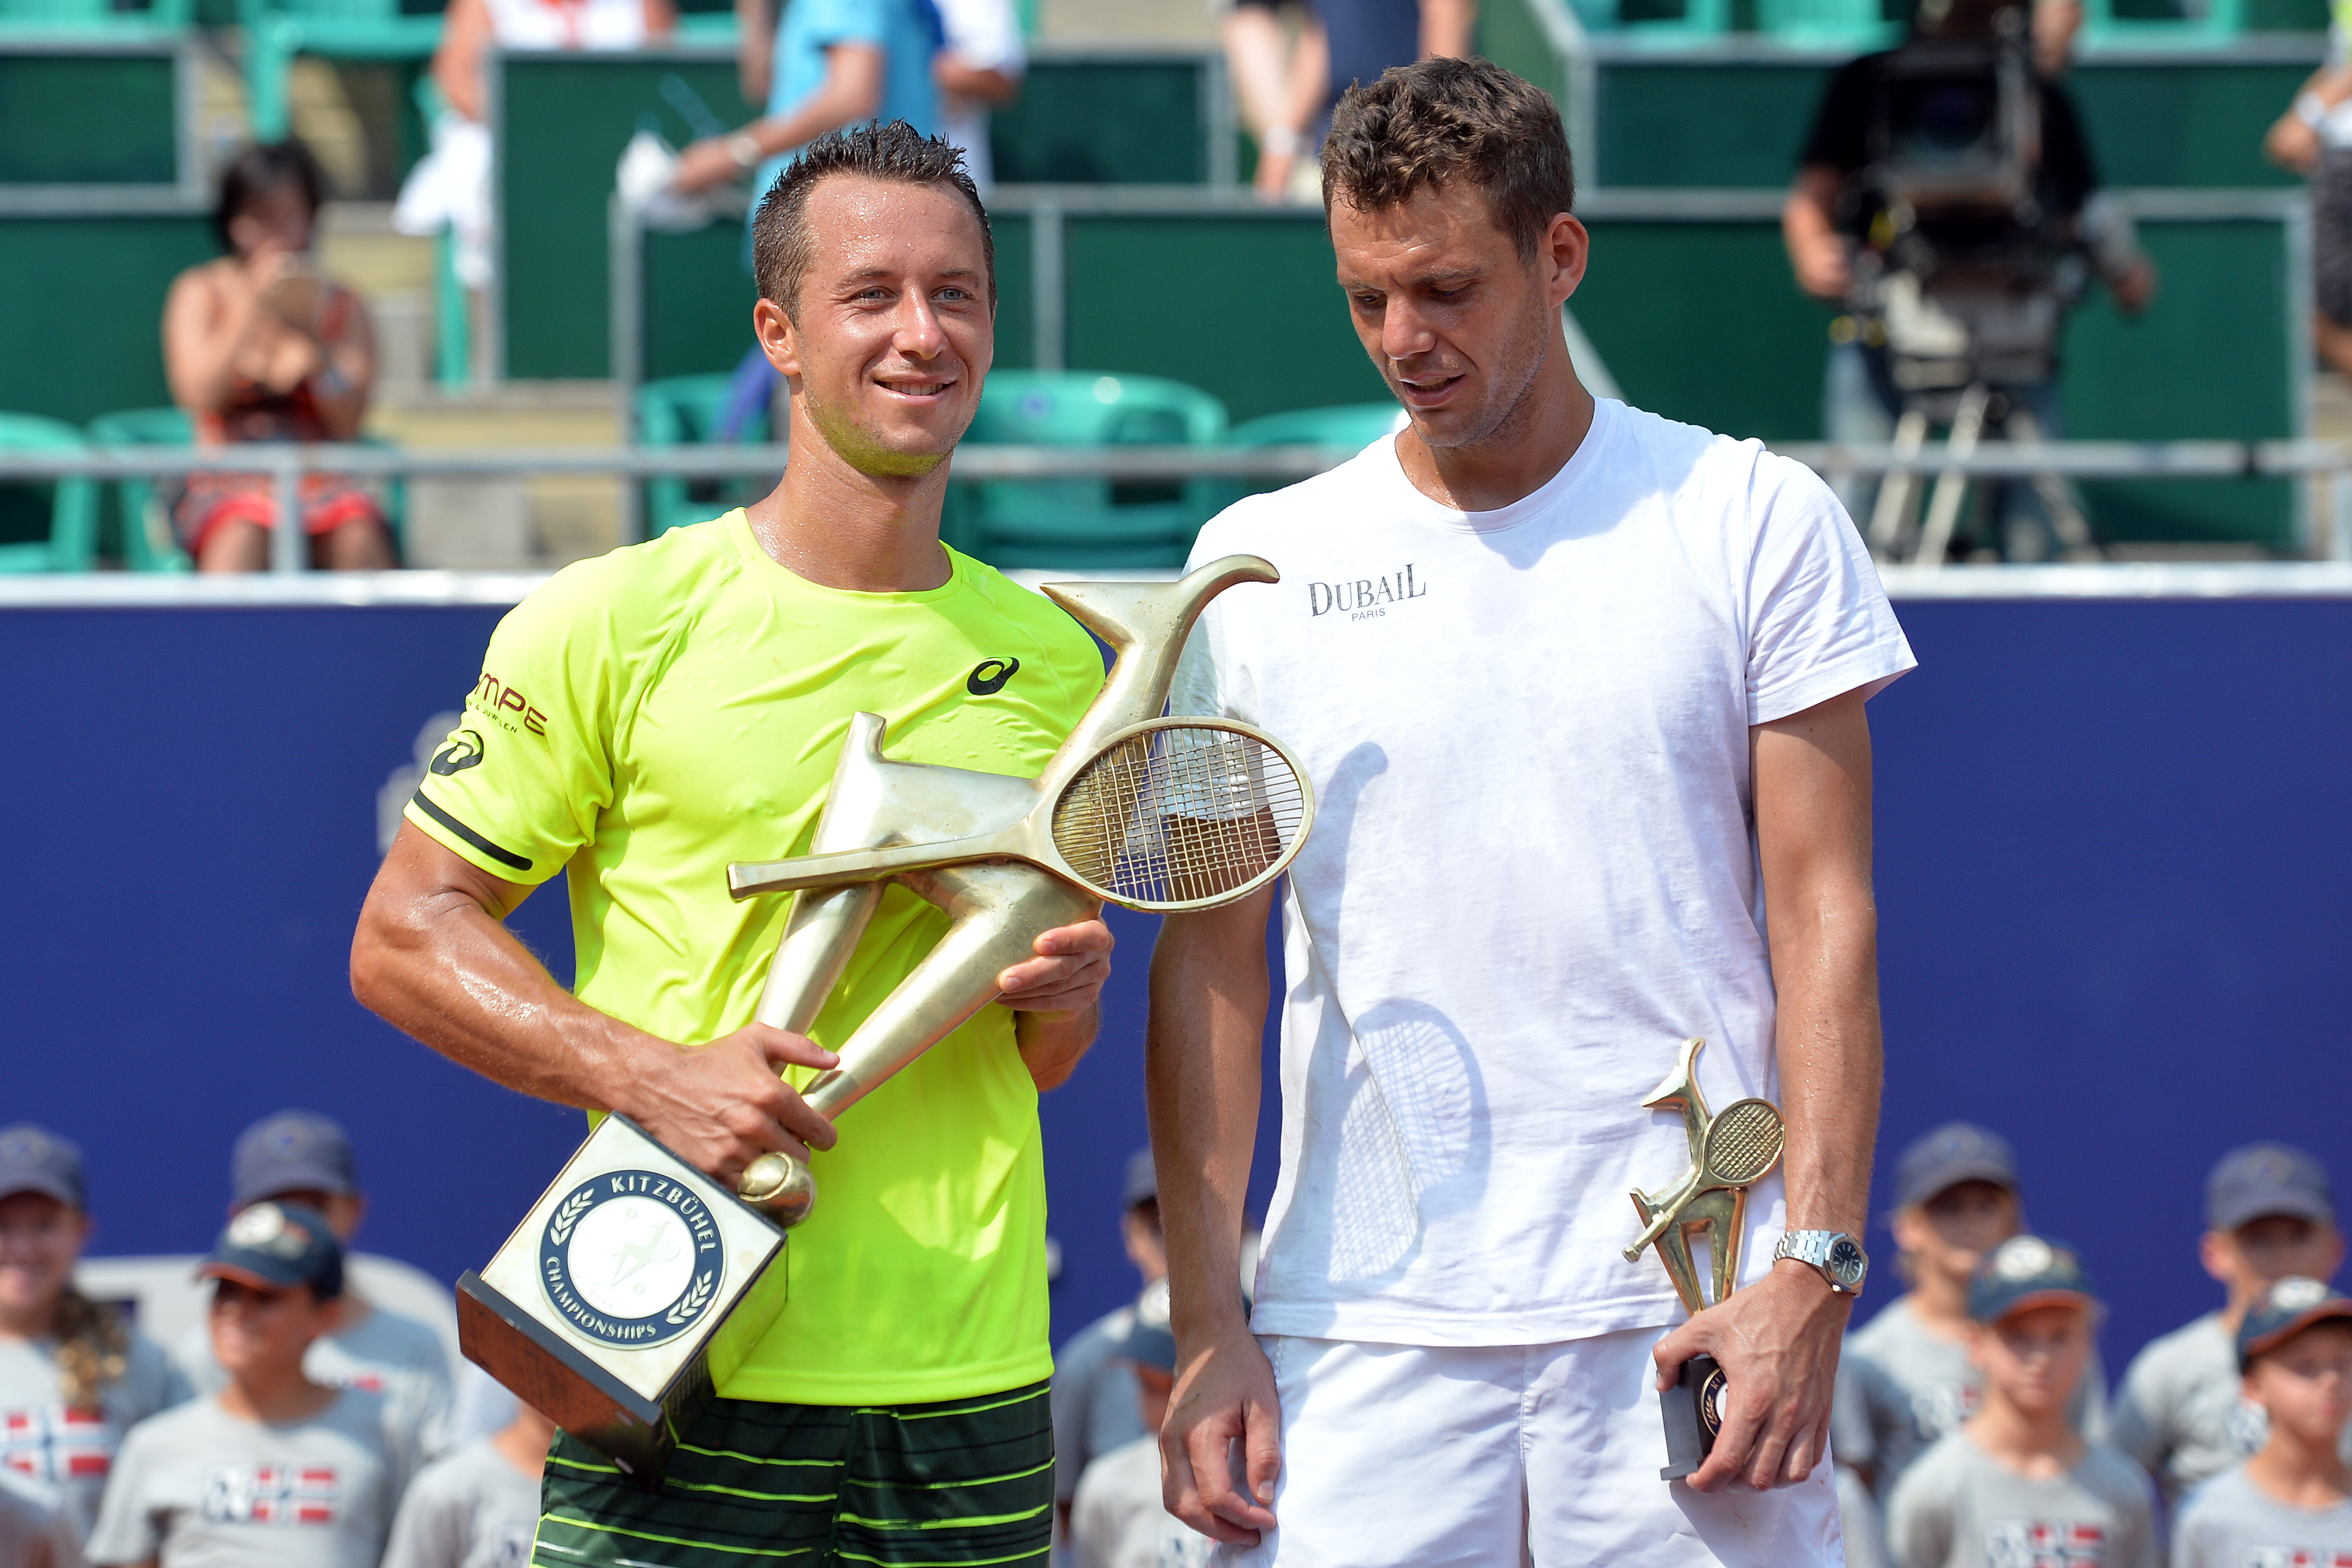 Germany's winner Philipp Kohlschreiber, left, and France's Paul-Henri Mathieu pose for media after their final match at the Generali Open tennis tournament in Kitzbuehel, Austria, Saturday, Aug. 8, 2015.  Kohlschreiber won with 2-6, 6-2 and 6-2. (AP Photo